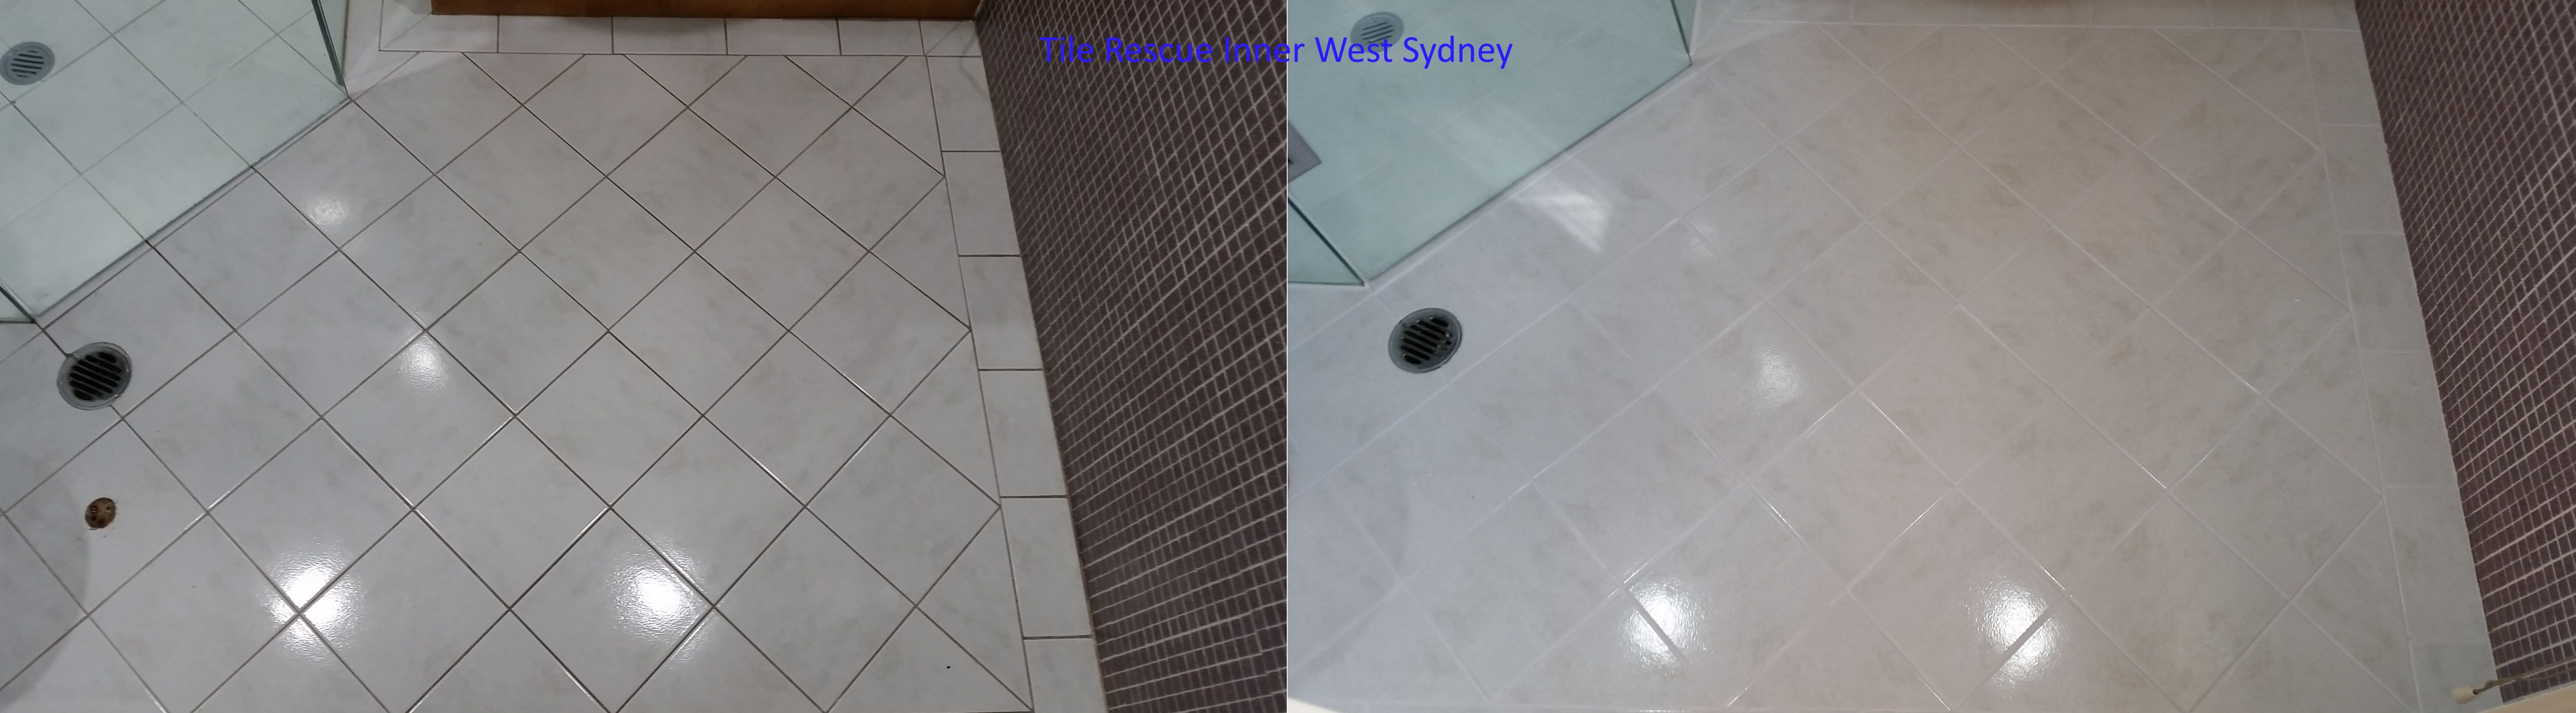 tile rescue inner west sydney bathroom floor cle tile rescue rh pinterest com